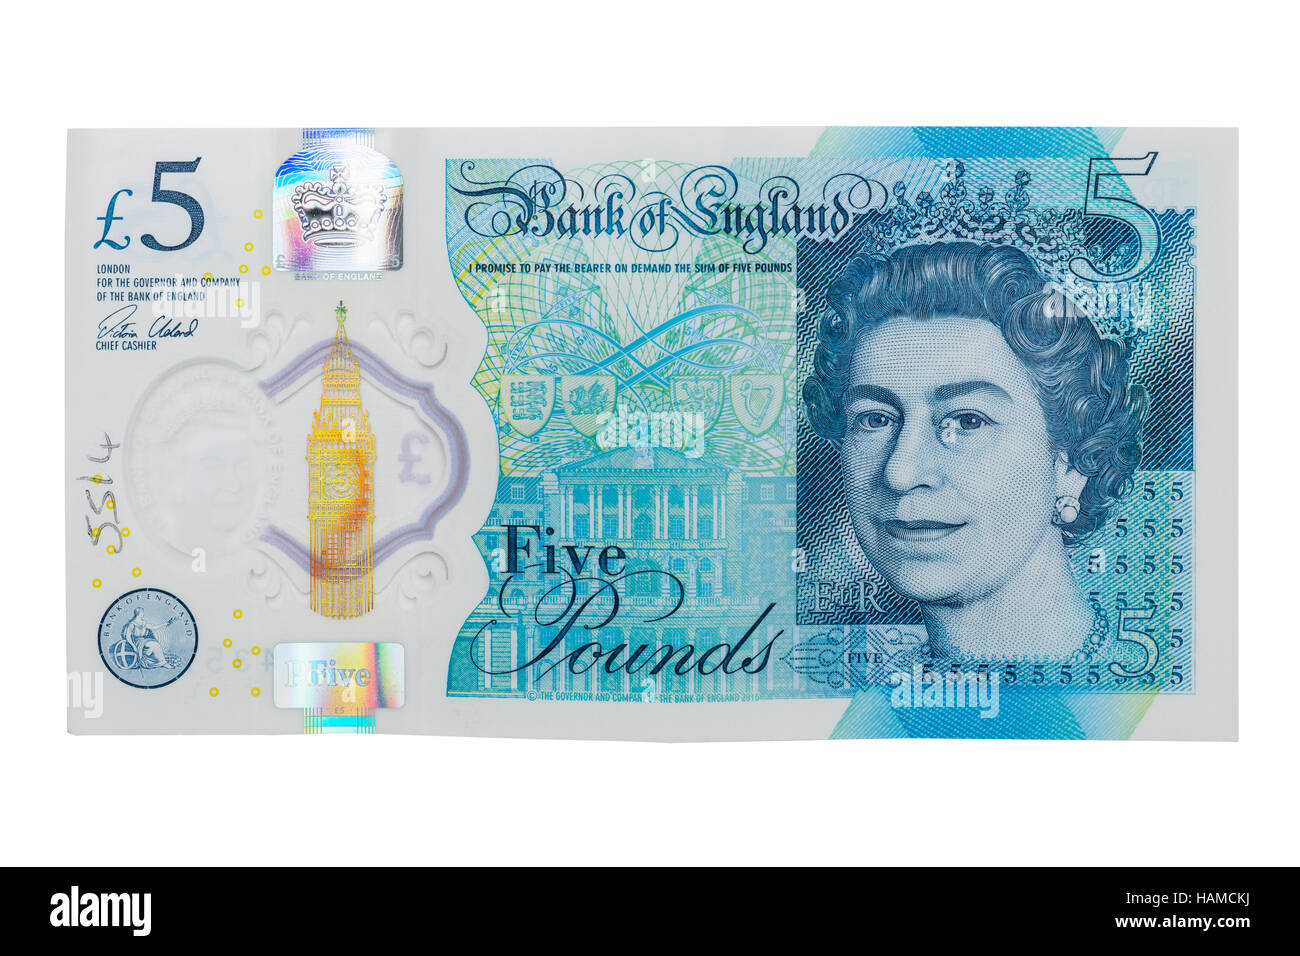 A new plastic £5 note on a white background - Stock Image